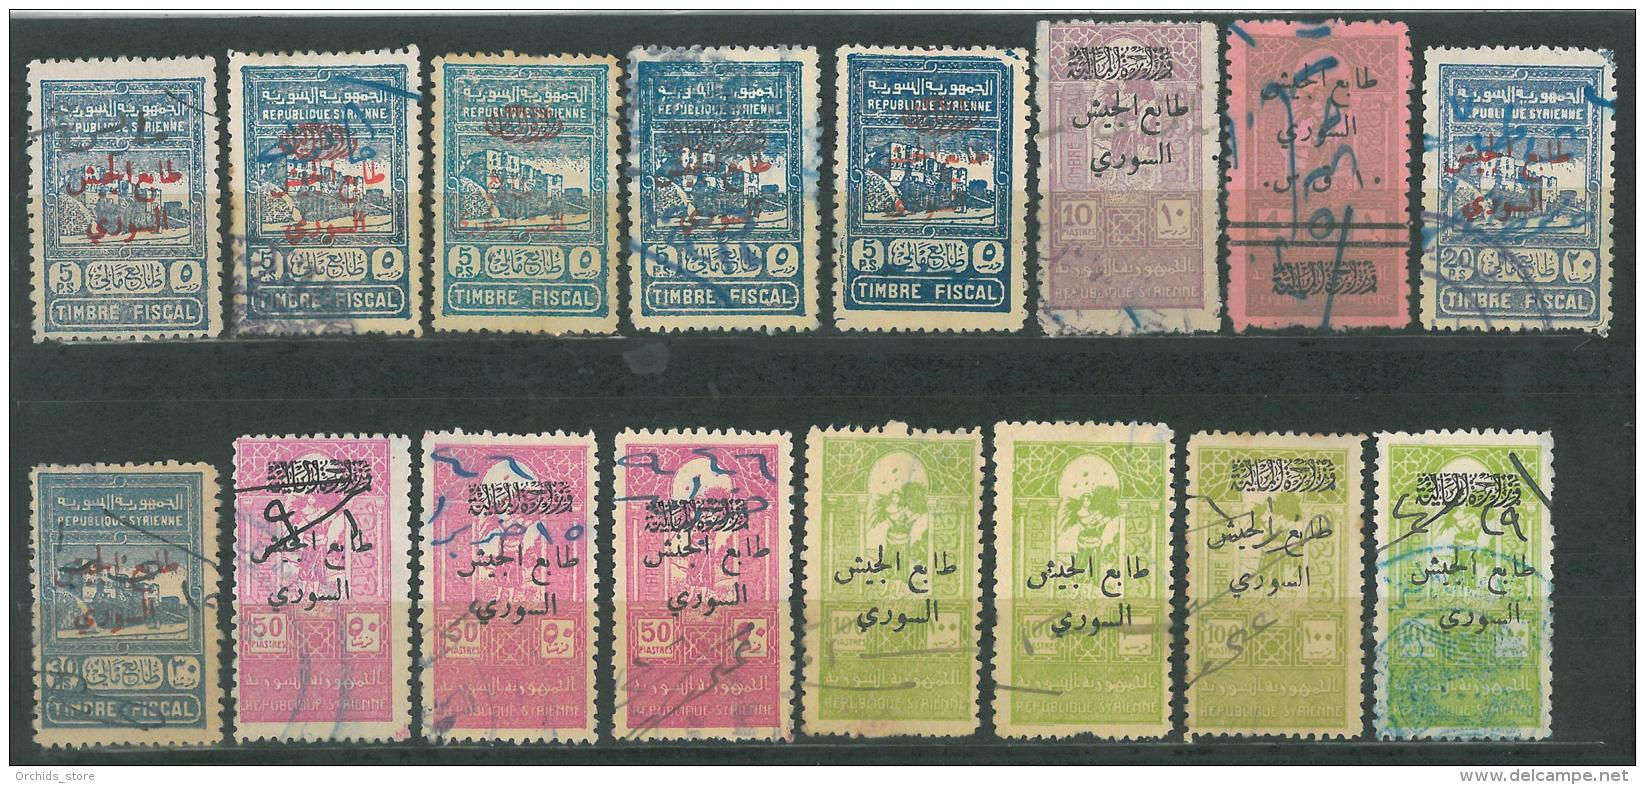 AS - SYRIA 1947-48 POSTAL TAX For The Syrian ARMY Revenue Stamps - 16 Diff - Syrië